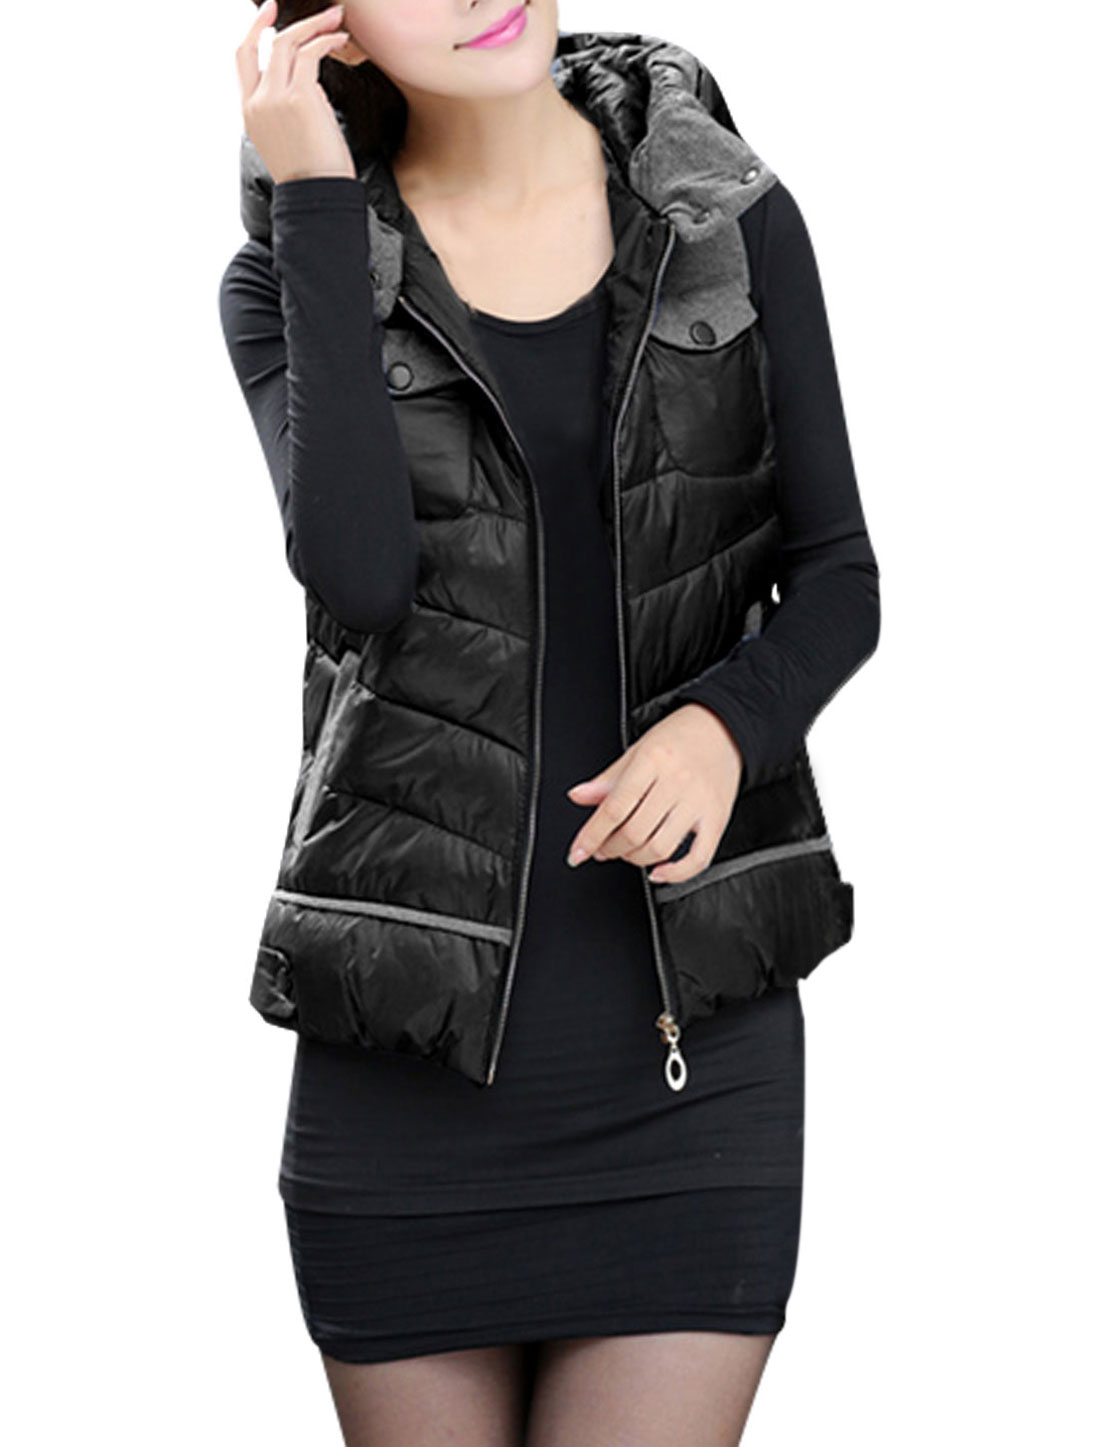 Women Zip Up Front Double Slant Pockets Casual Hooded Gilet Black L